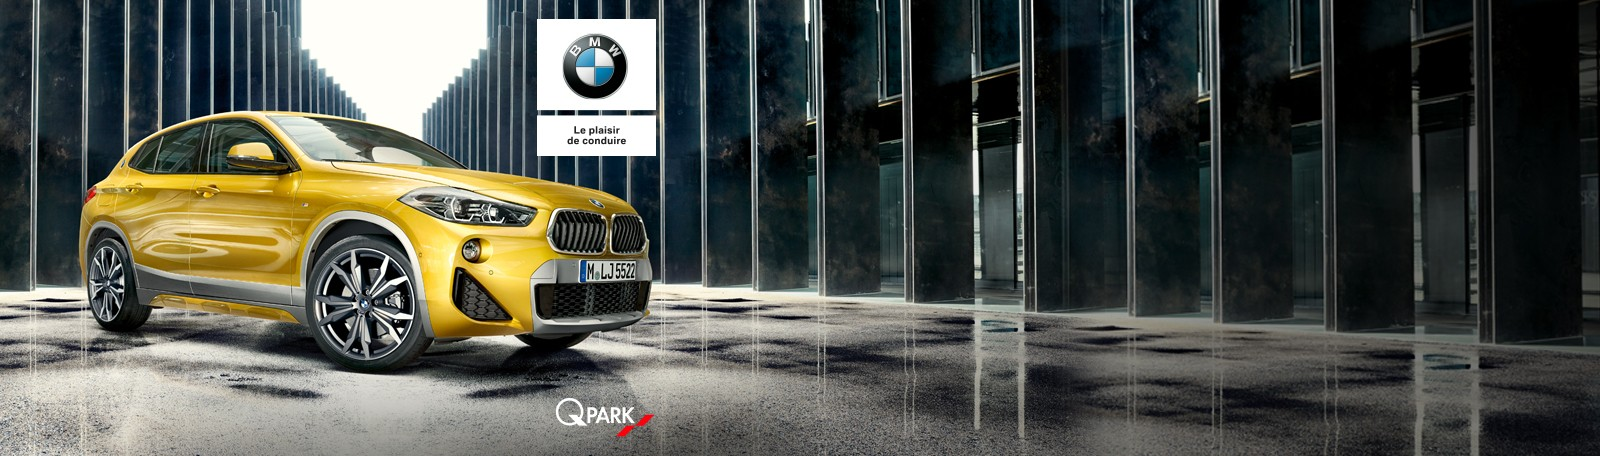 Partnership BMW - Q-Park 2019